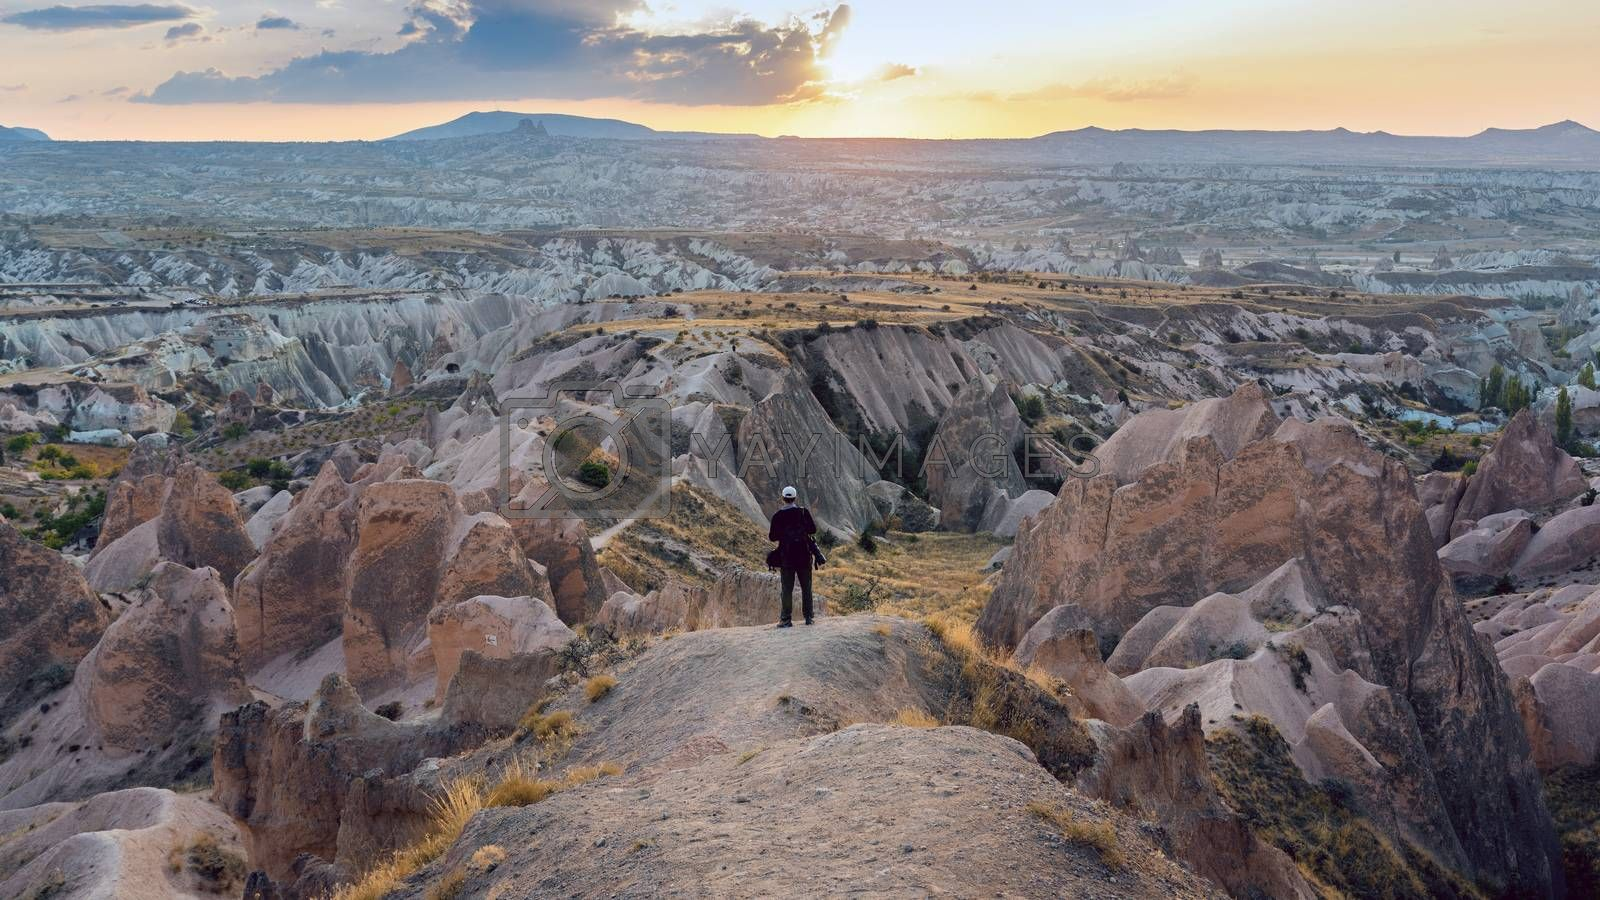 Professional photographer standing on mountain landscape of Cappadocia, Turkey.